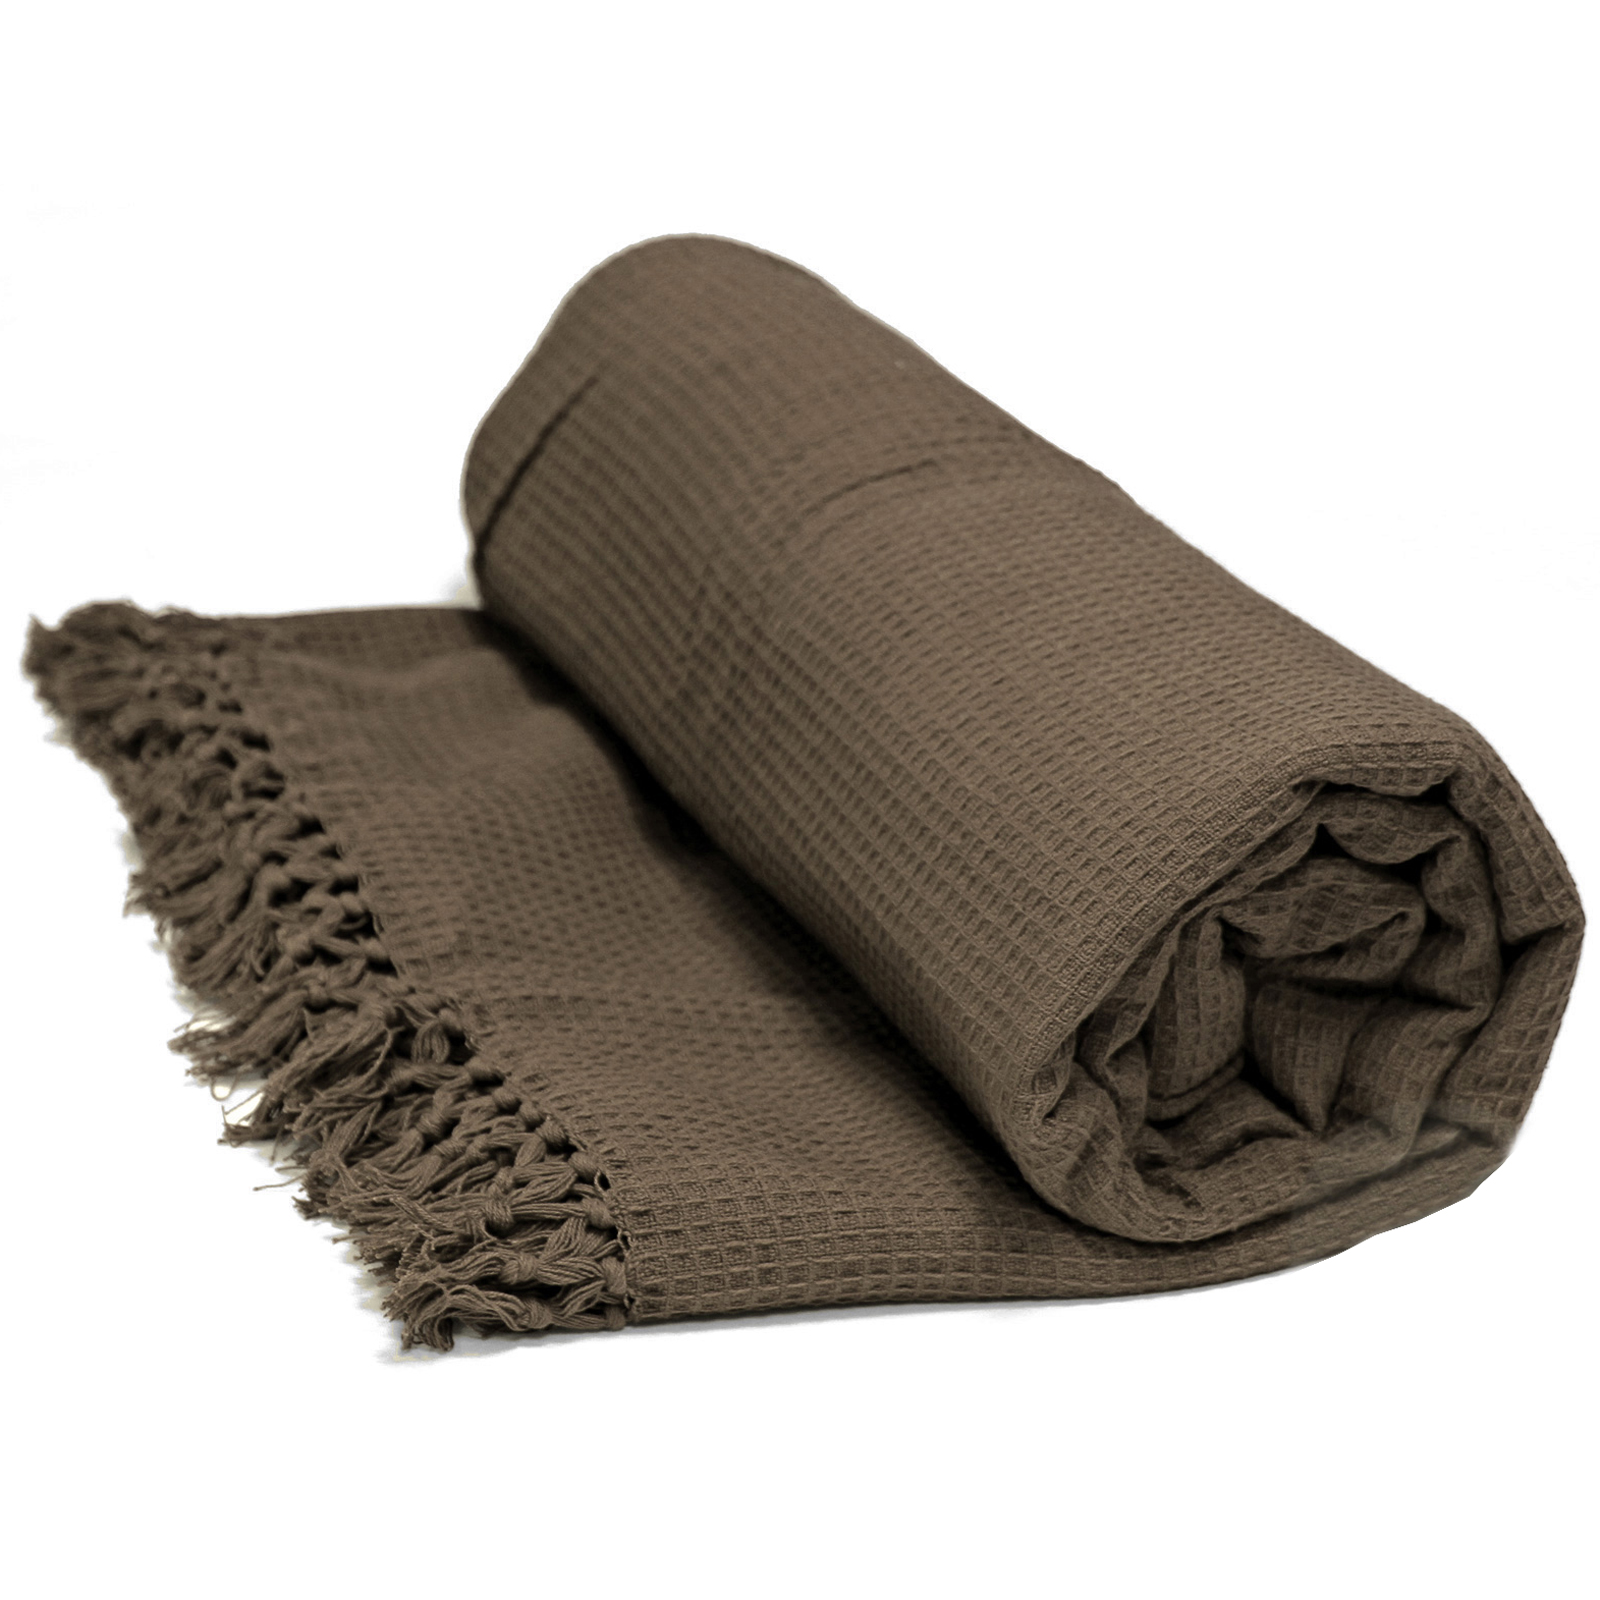 honeycombcottonthrowsextralargeluxurythermal. honeycomb  cotton throws extra large luxury thermal throw over